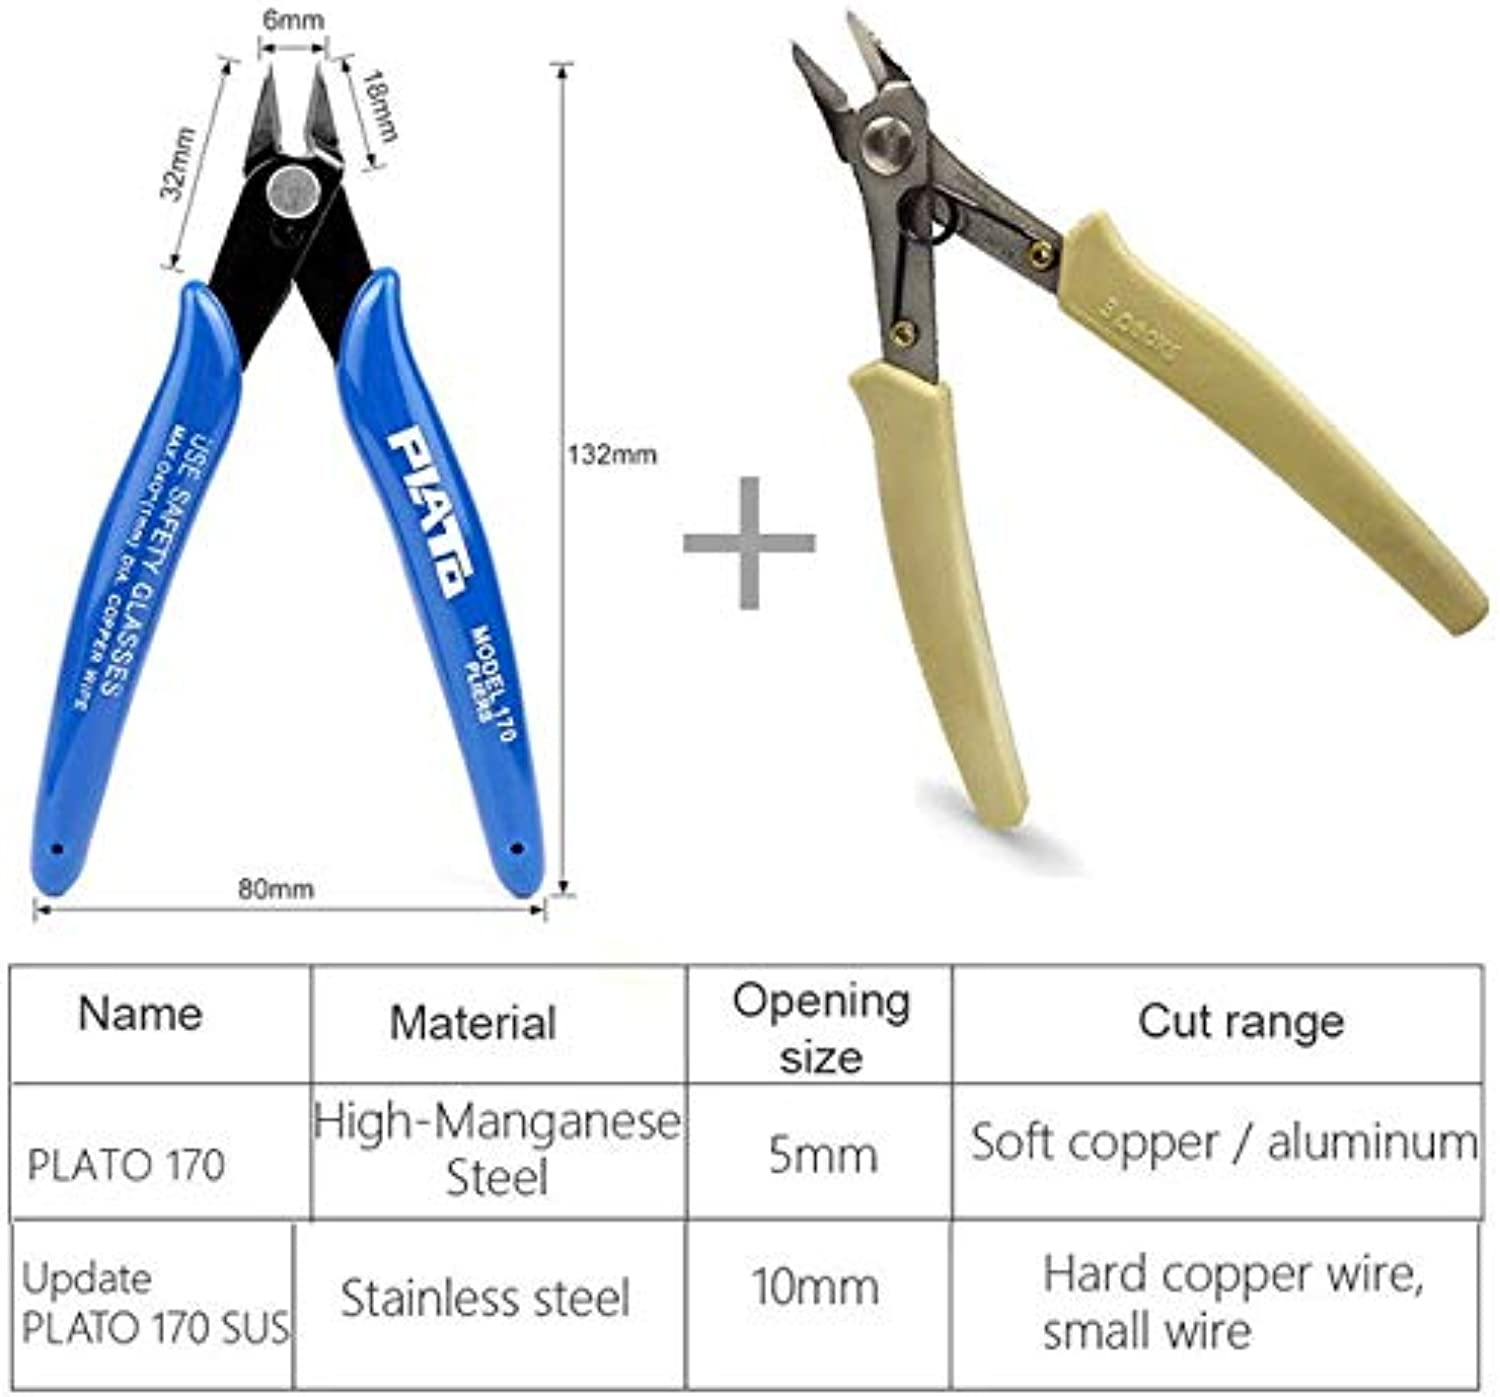 1Pc Diagonal Pliers Carbon Steel Pliers Electrical Wire Cable Cutters Cutting Side Snips Flush Pliers Nipper Hand Tools   2pcs Nippers